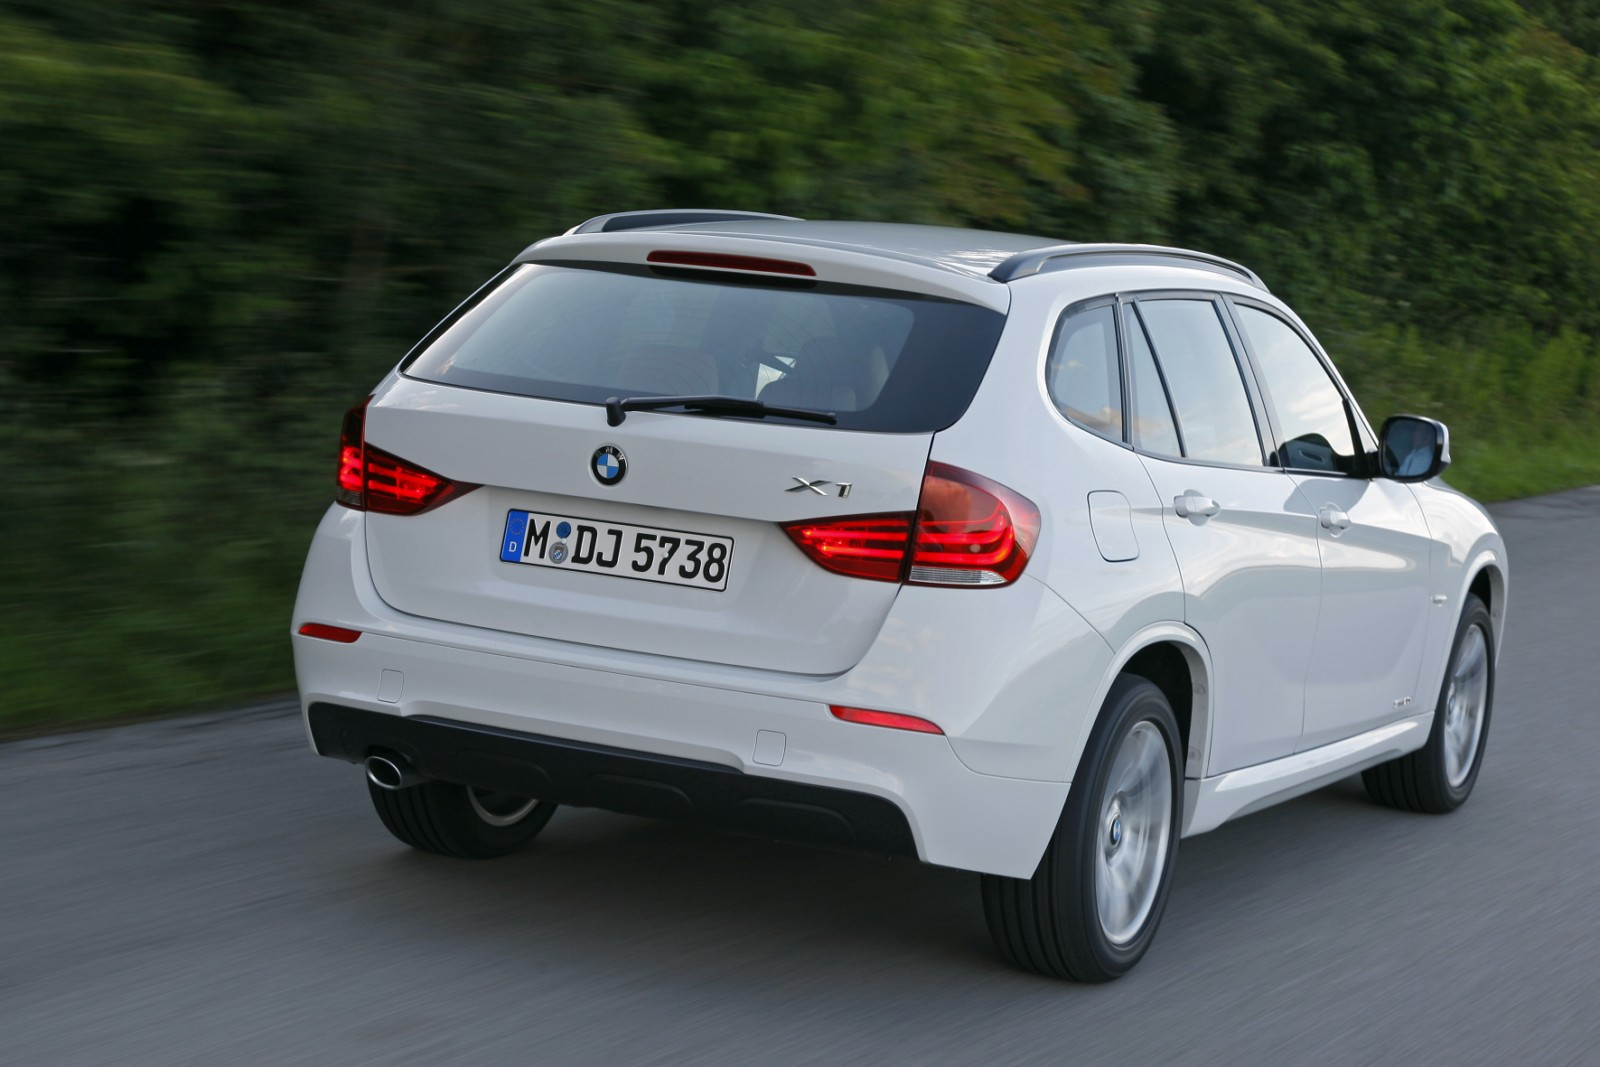 bmw x1 sdrive 20d exclusive review cars prices. Black Bedroom Furniture Sets. Home Design Ideas